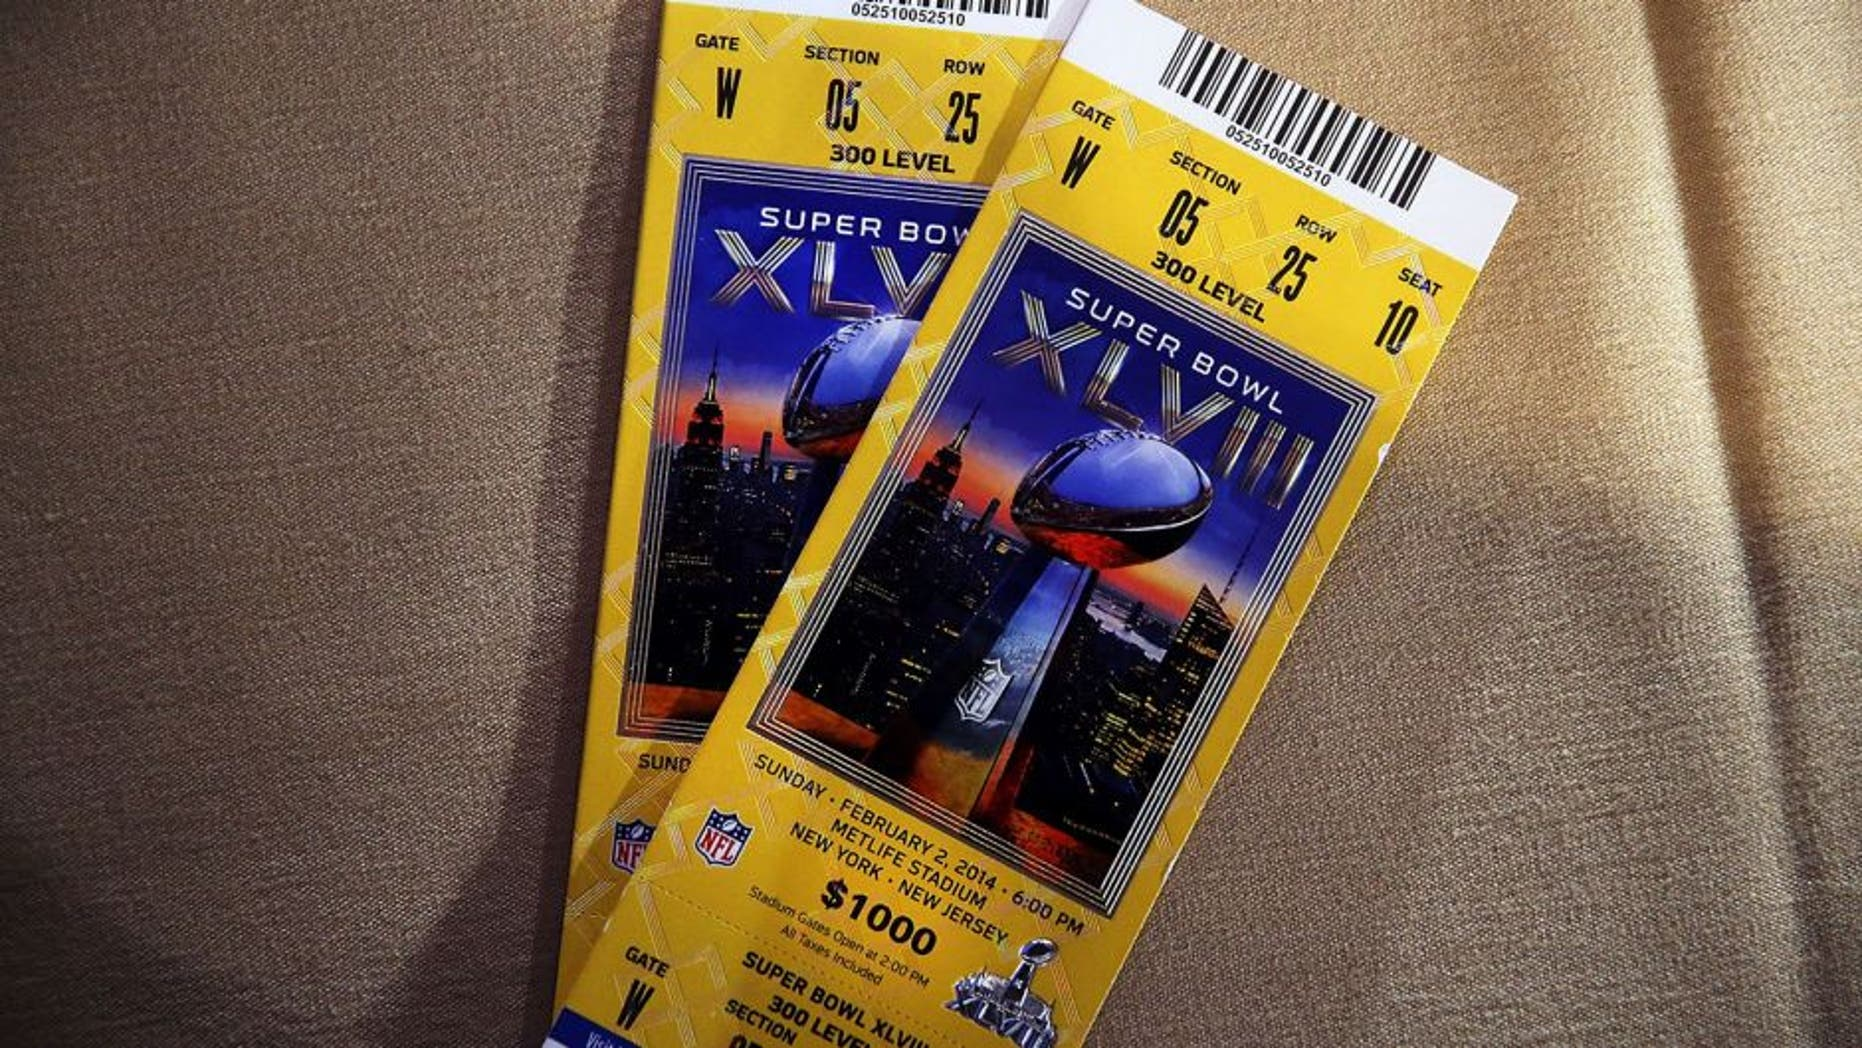 NEW YORK, NY - JANUARY 30: Authentic game tickets are viewed at a news conference on the latest seizure of counterfeit sports-related merchandise leading up to Super Bowl XLVIII on January 30, 2014 in New York City. Officials from the National Football League, U.S. Immigration and Customs Enforcement and U.S. Customs and Border Protection displayed recently confiscated items while also showing phony websites that have been set-up to sell Super Bowl XLVIII merchandise. Counterfeit sports merchandise, much of which originates in China, is a multi million dollar industry. (Photo by Spencer Platt/Getty Images)